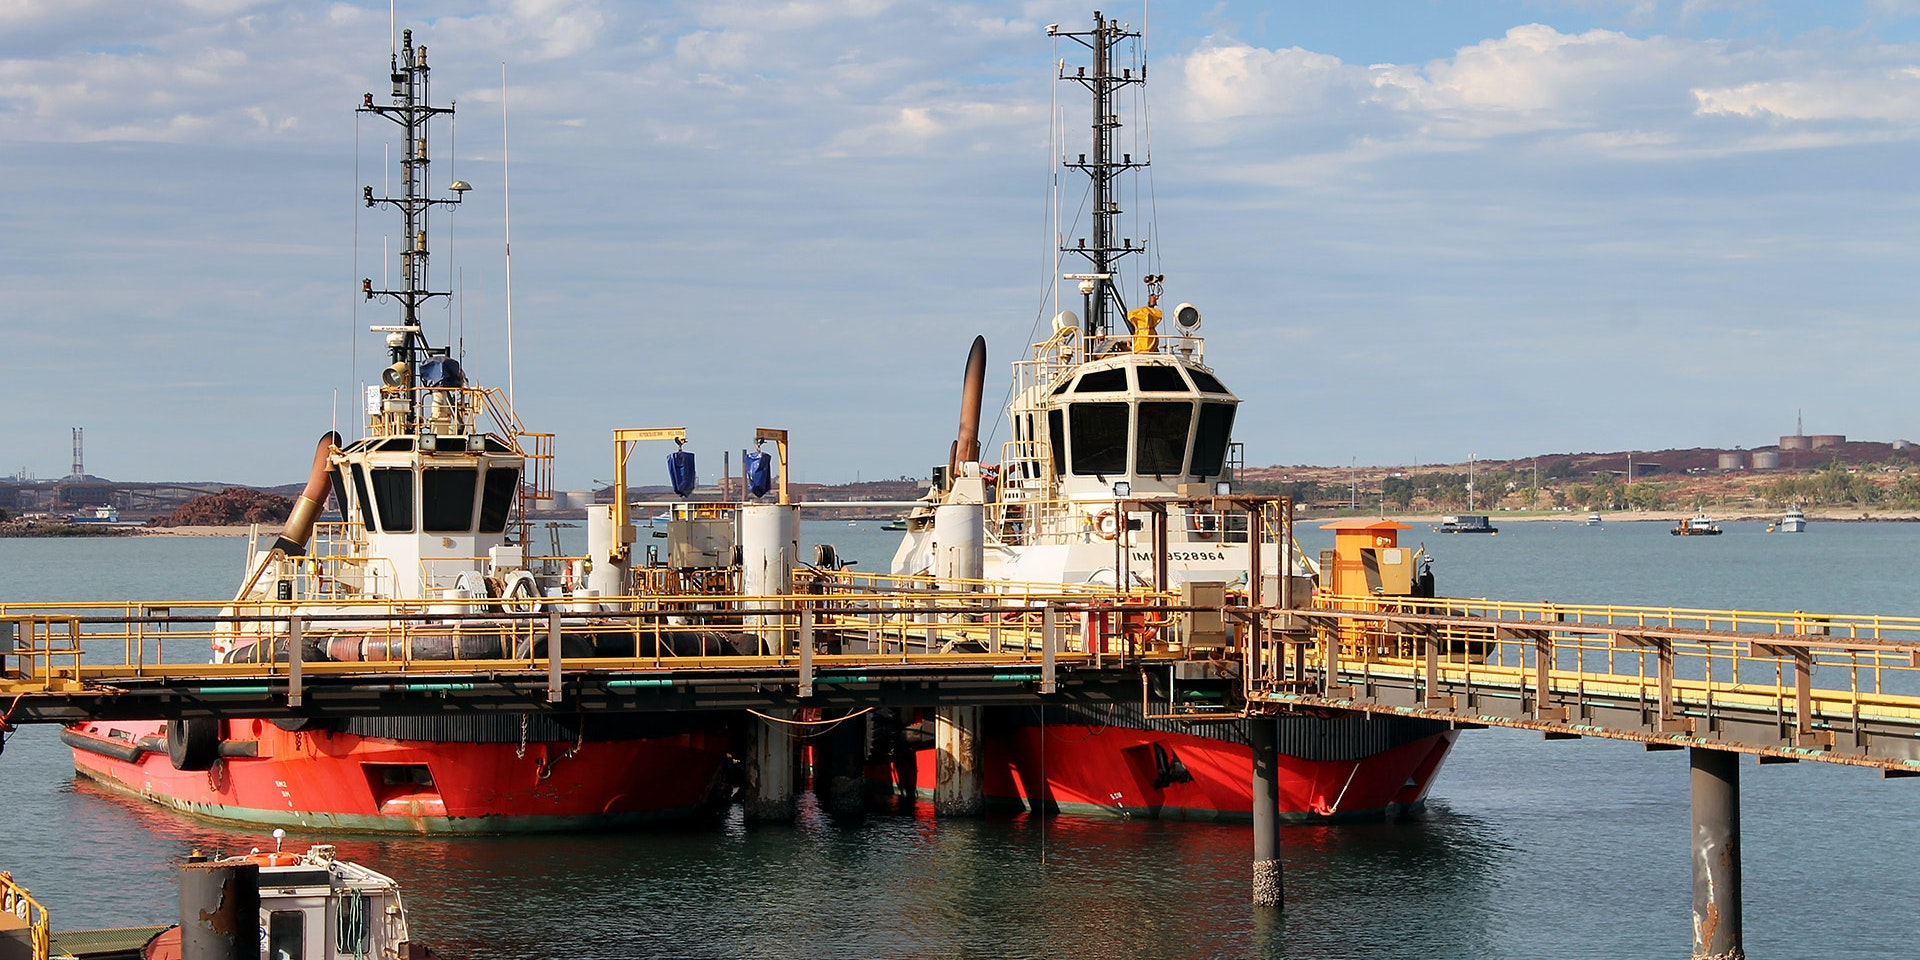 CP56 LED Flood Light in application, installed ob tug boats in a bulk port on iron ore